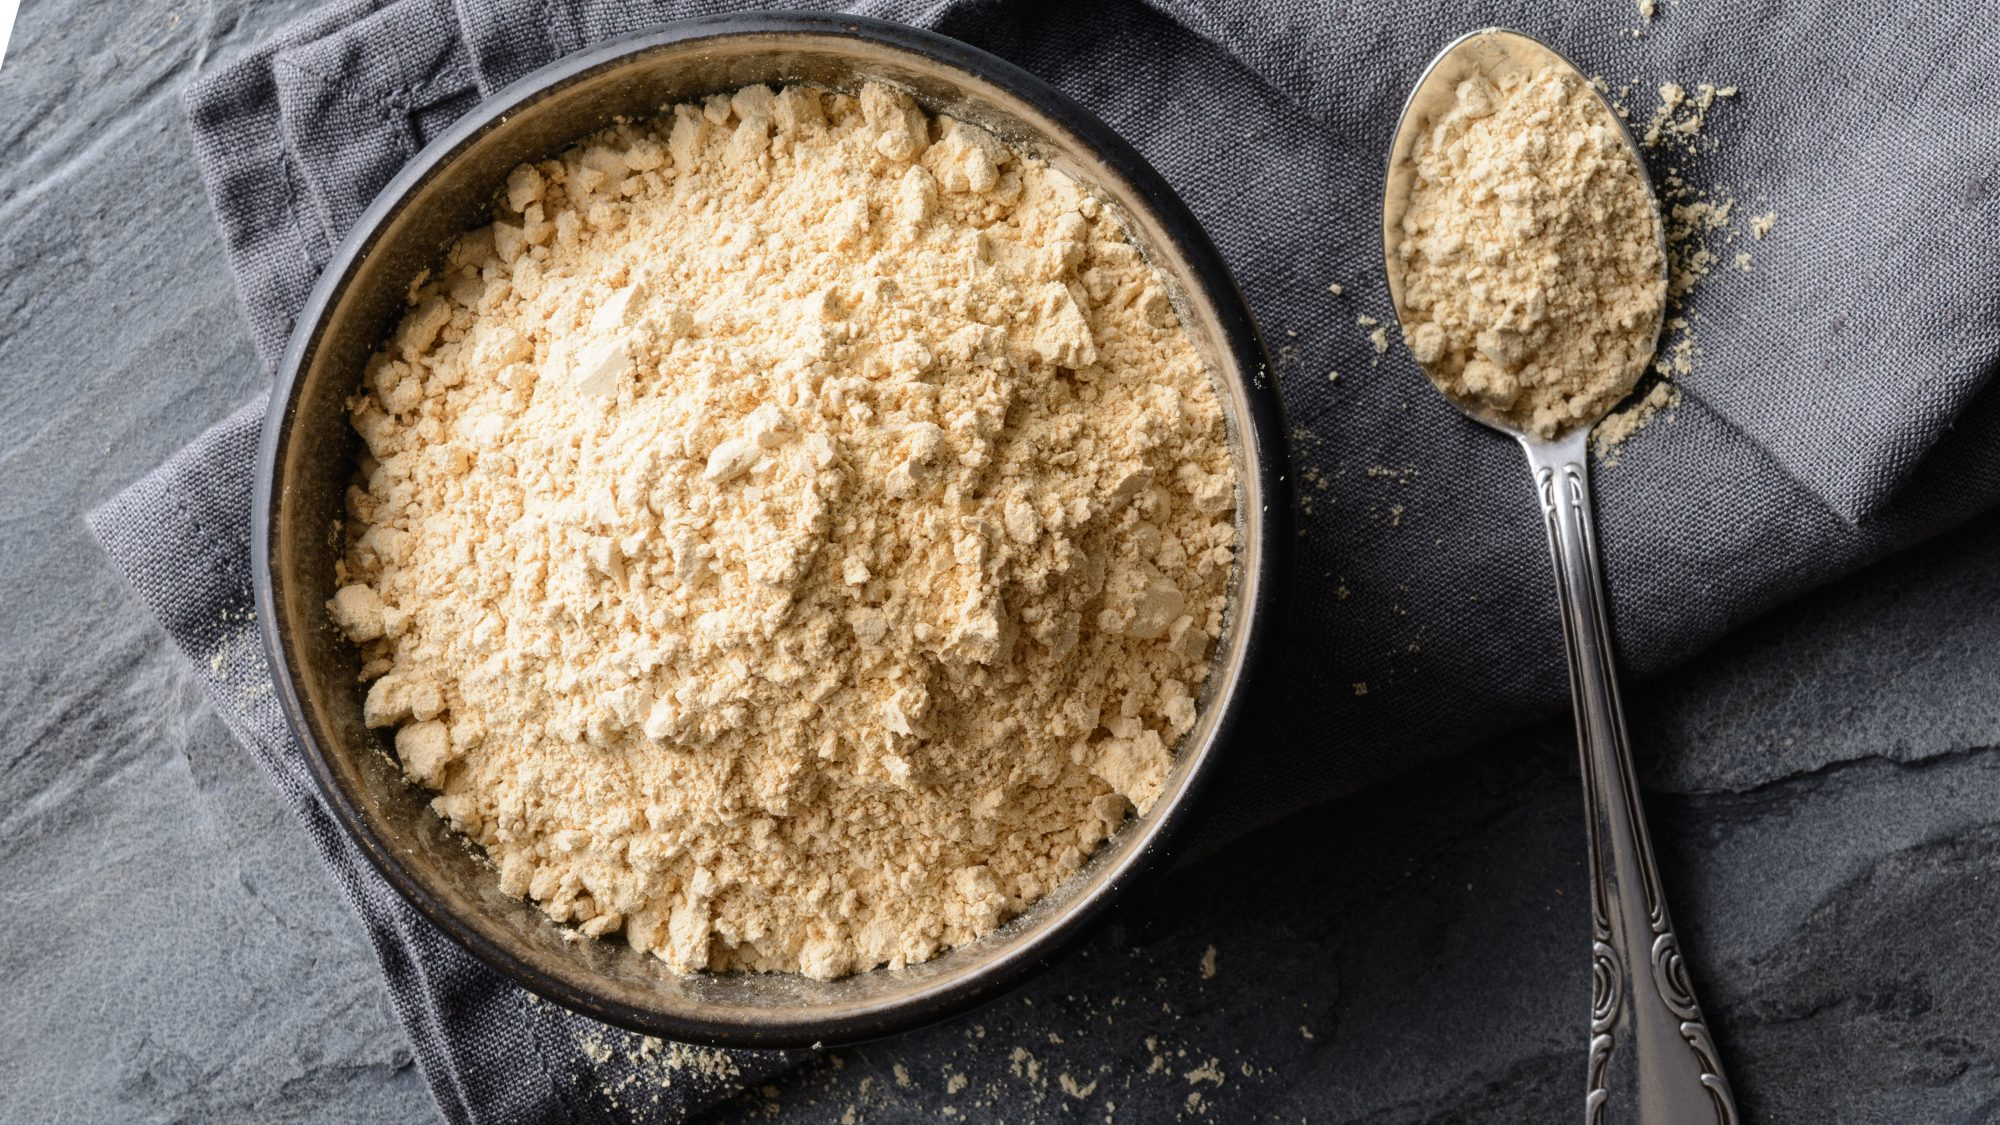 Maca-benefits: maca root powder